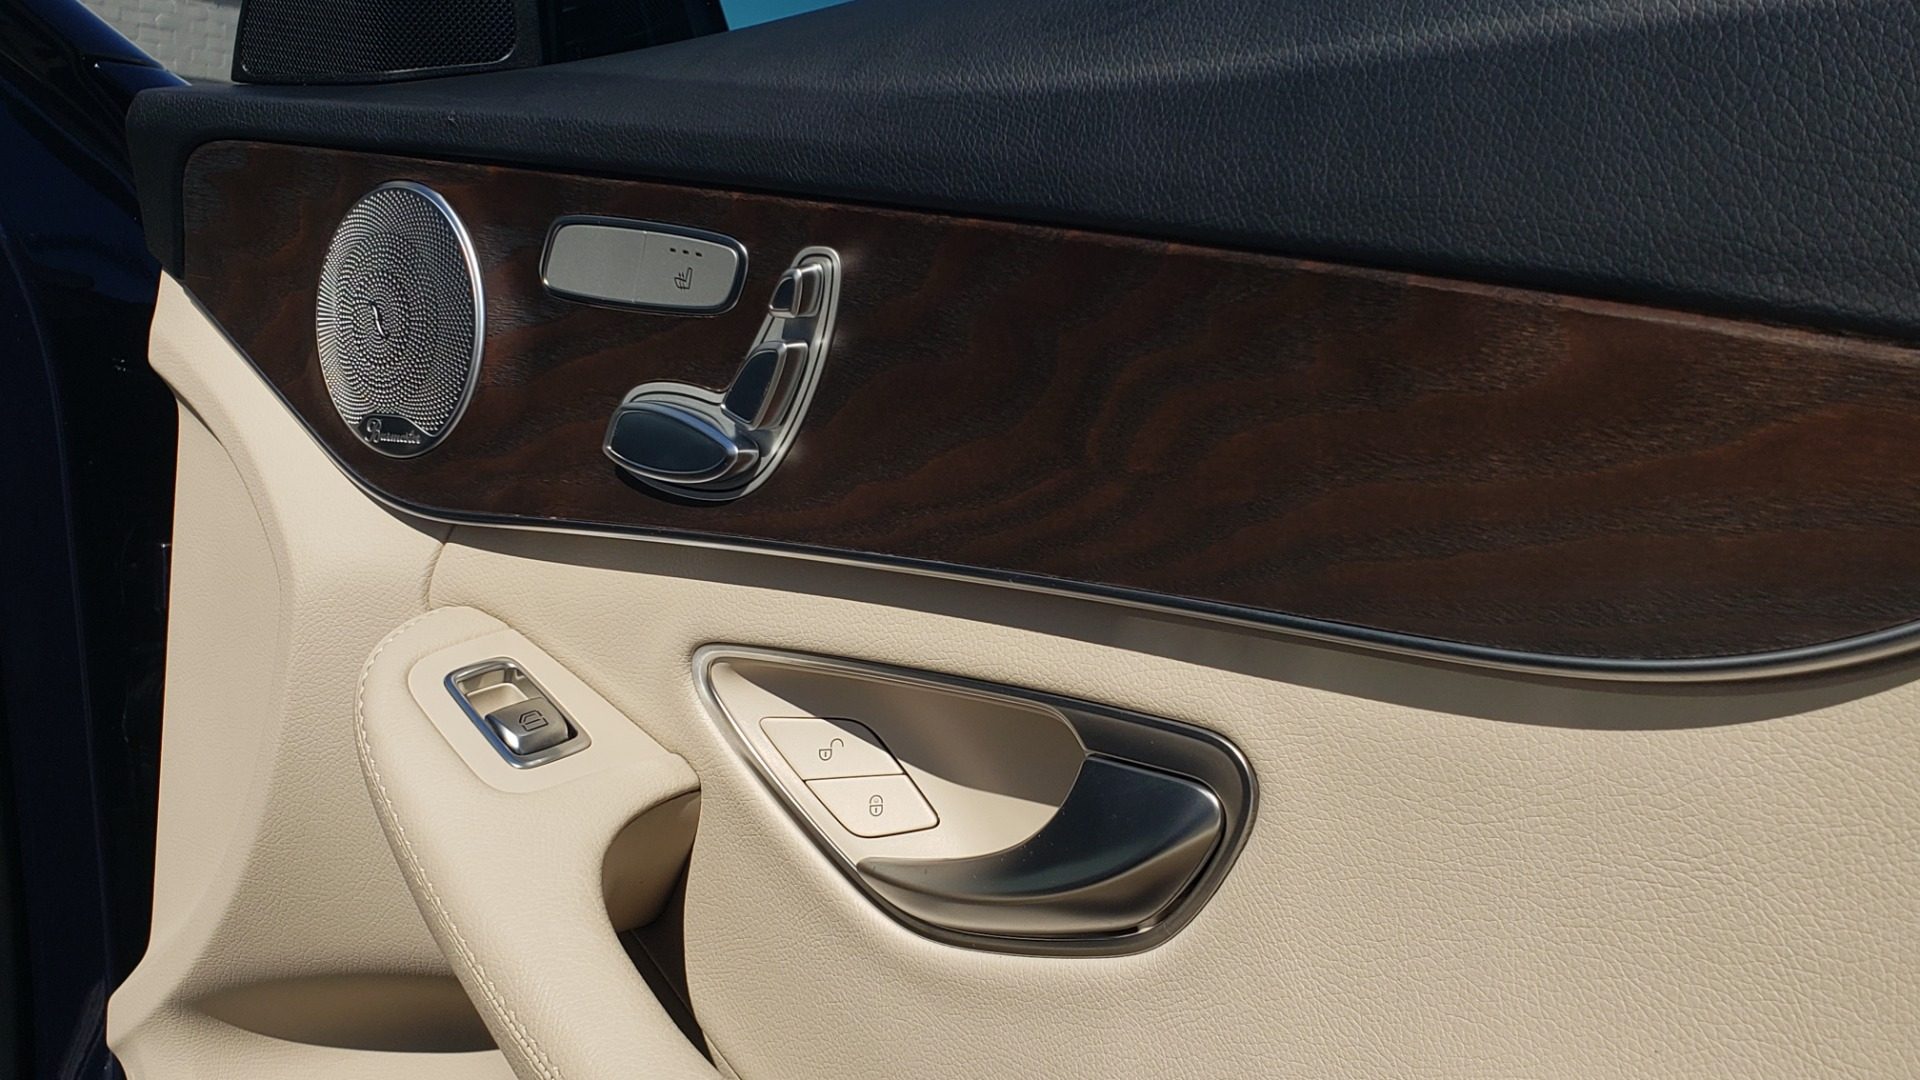 Used 2018 Mercedes-Benz C-CLASS C 300 PREMIUM / SUNROOF / BURMESTER / BSM / REARVIEW for sale $23,995 at Formula Imports in Charlotte NC 28227 57